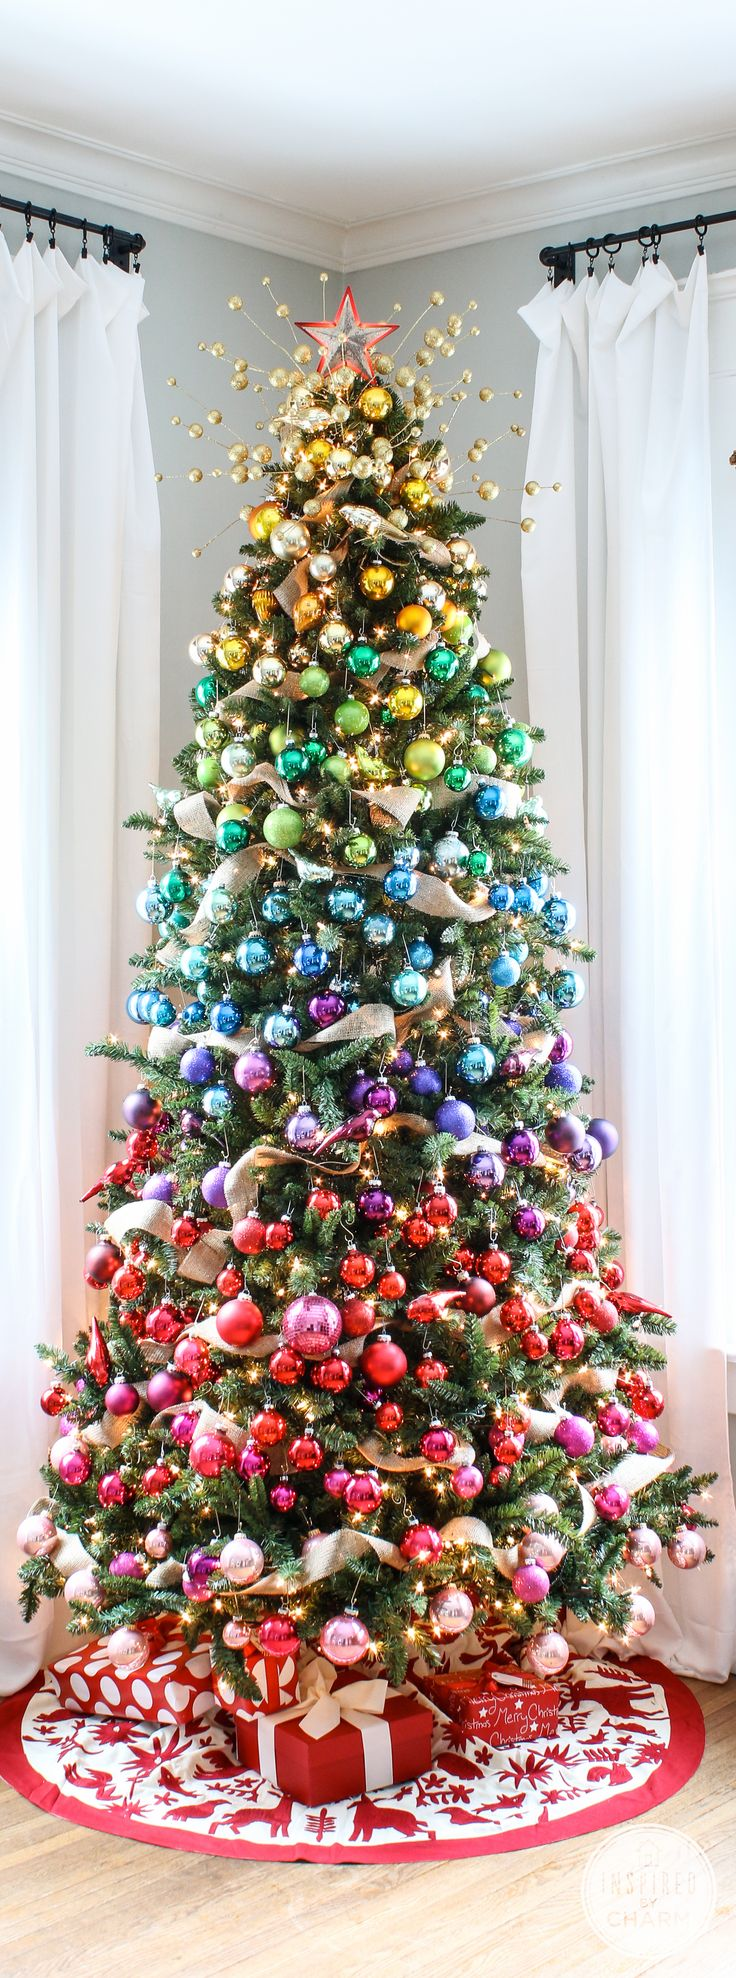 The Most Colorful Christmas Trees And Decorations You Have Ever Seen-homesthetics (2) & The Most Colorful And Sweet Christmas Trees And Decorations You Have ...